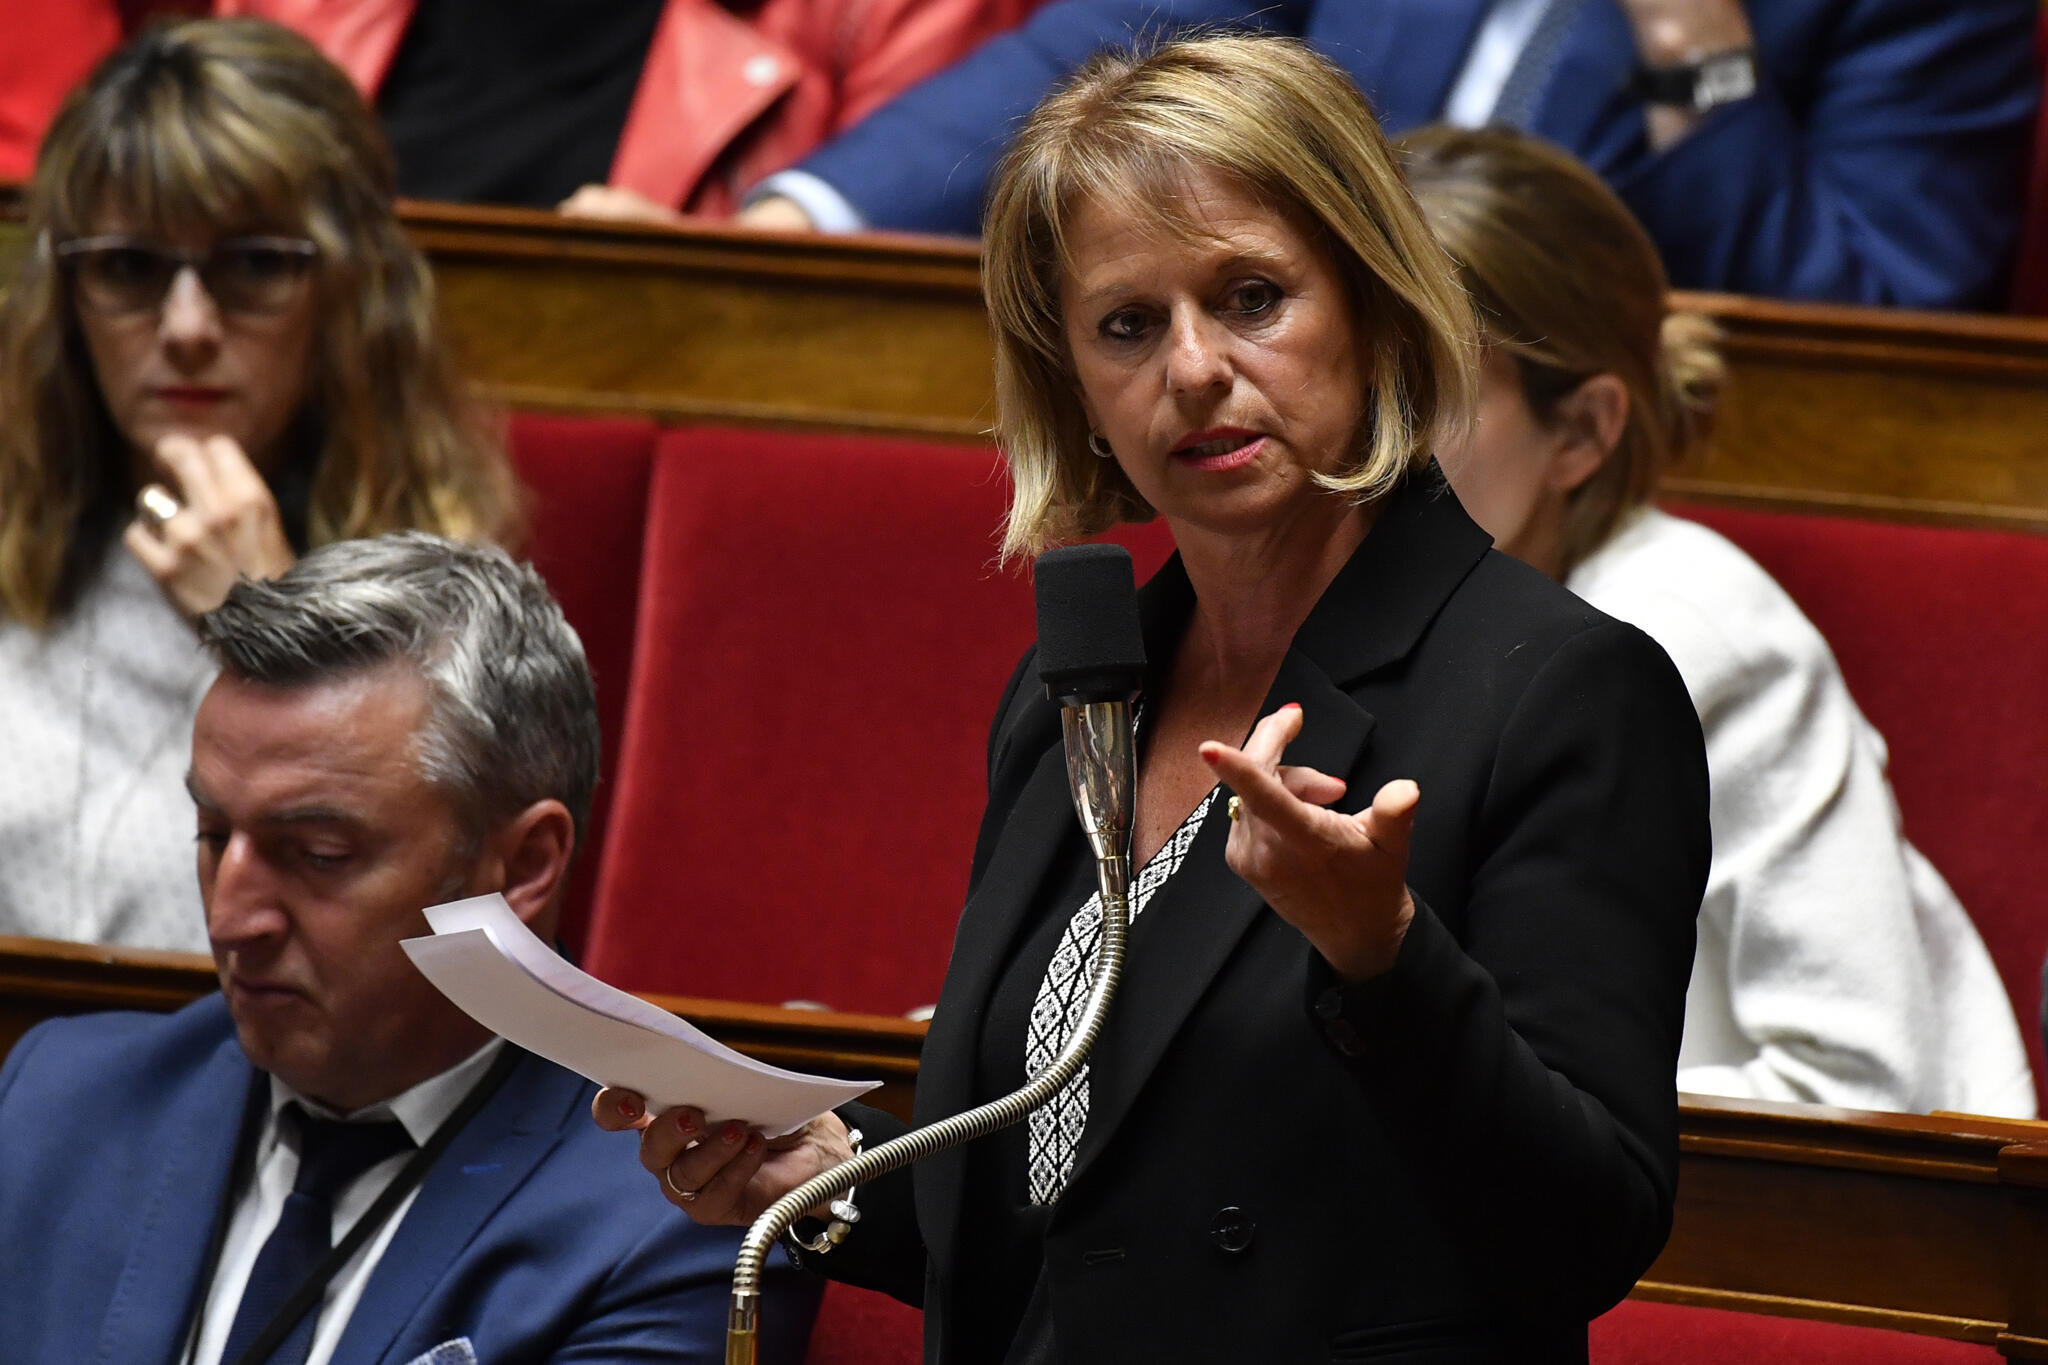 MP Brigitte Bourguignon presided the special commission on pension reform in the National Assembly, which concluded work on Tuesday without examining all 22,000 amendments.